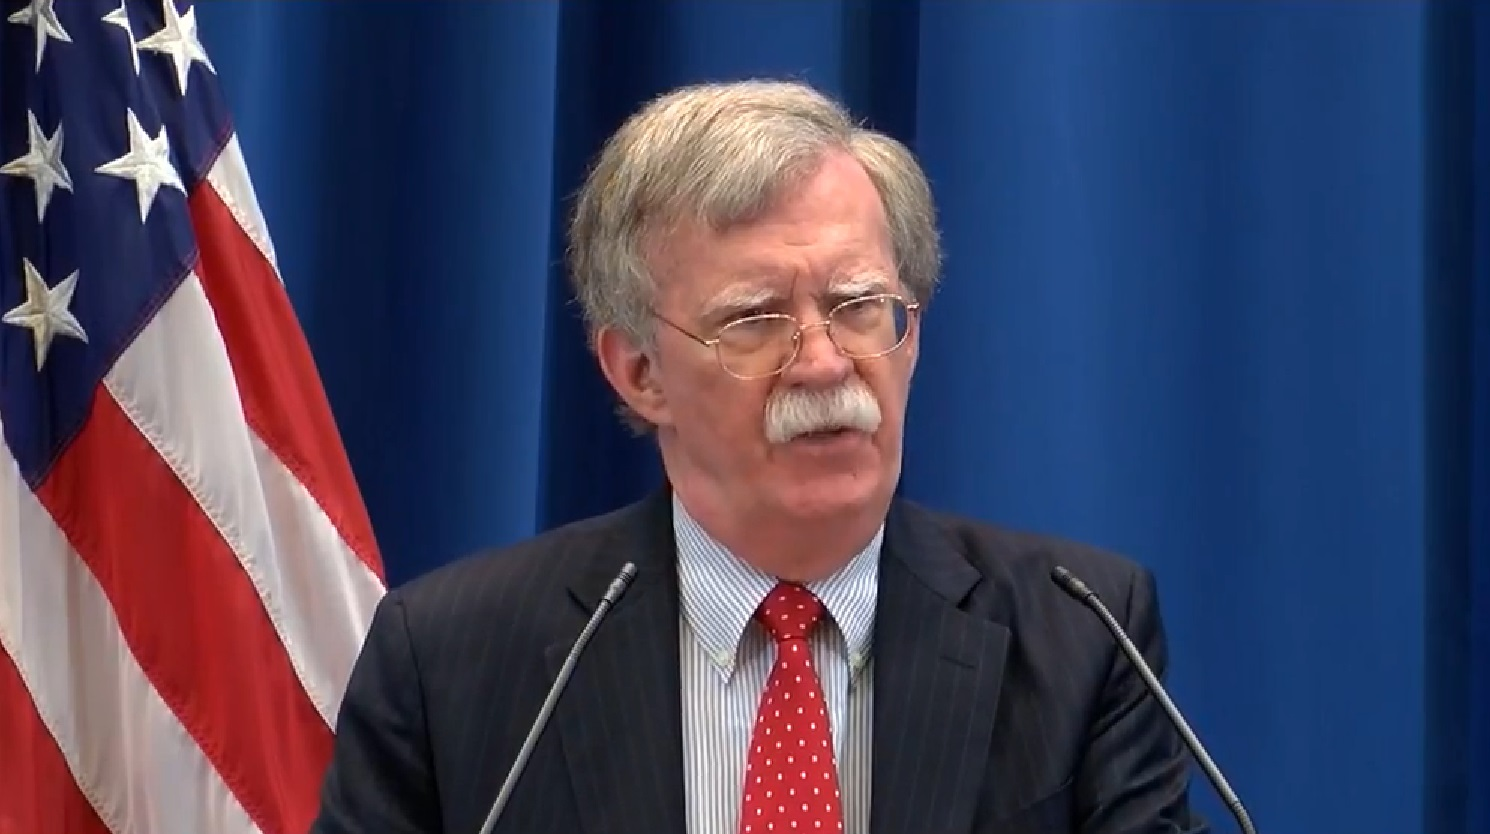 U.S. National Security Council Sought Military Options Against Iran Upon Request From John Bolton – Report